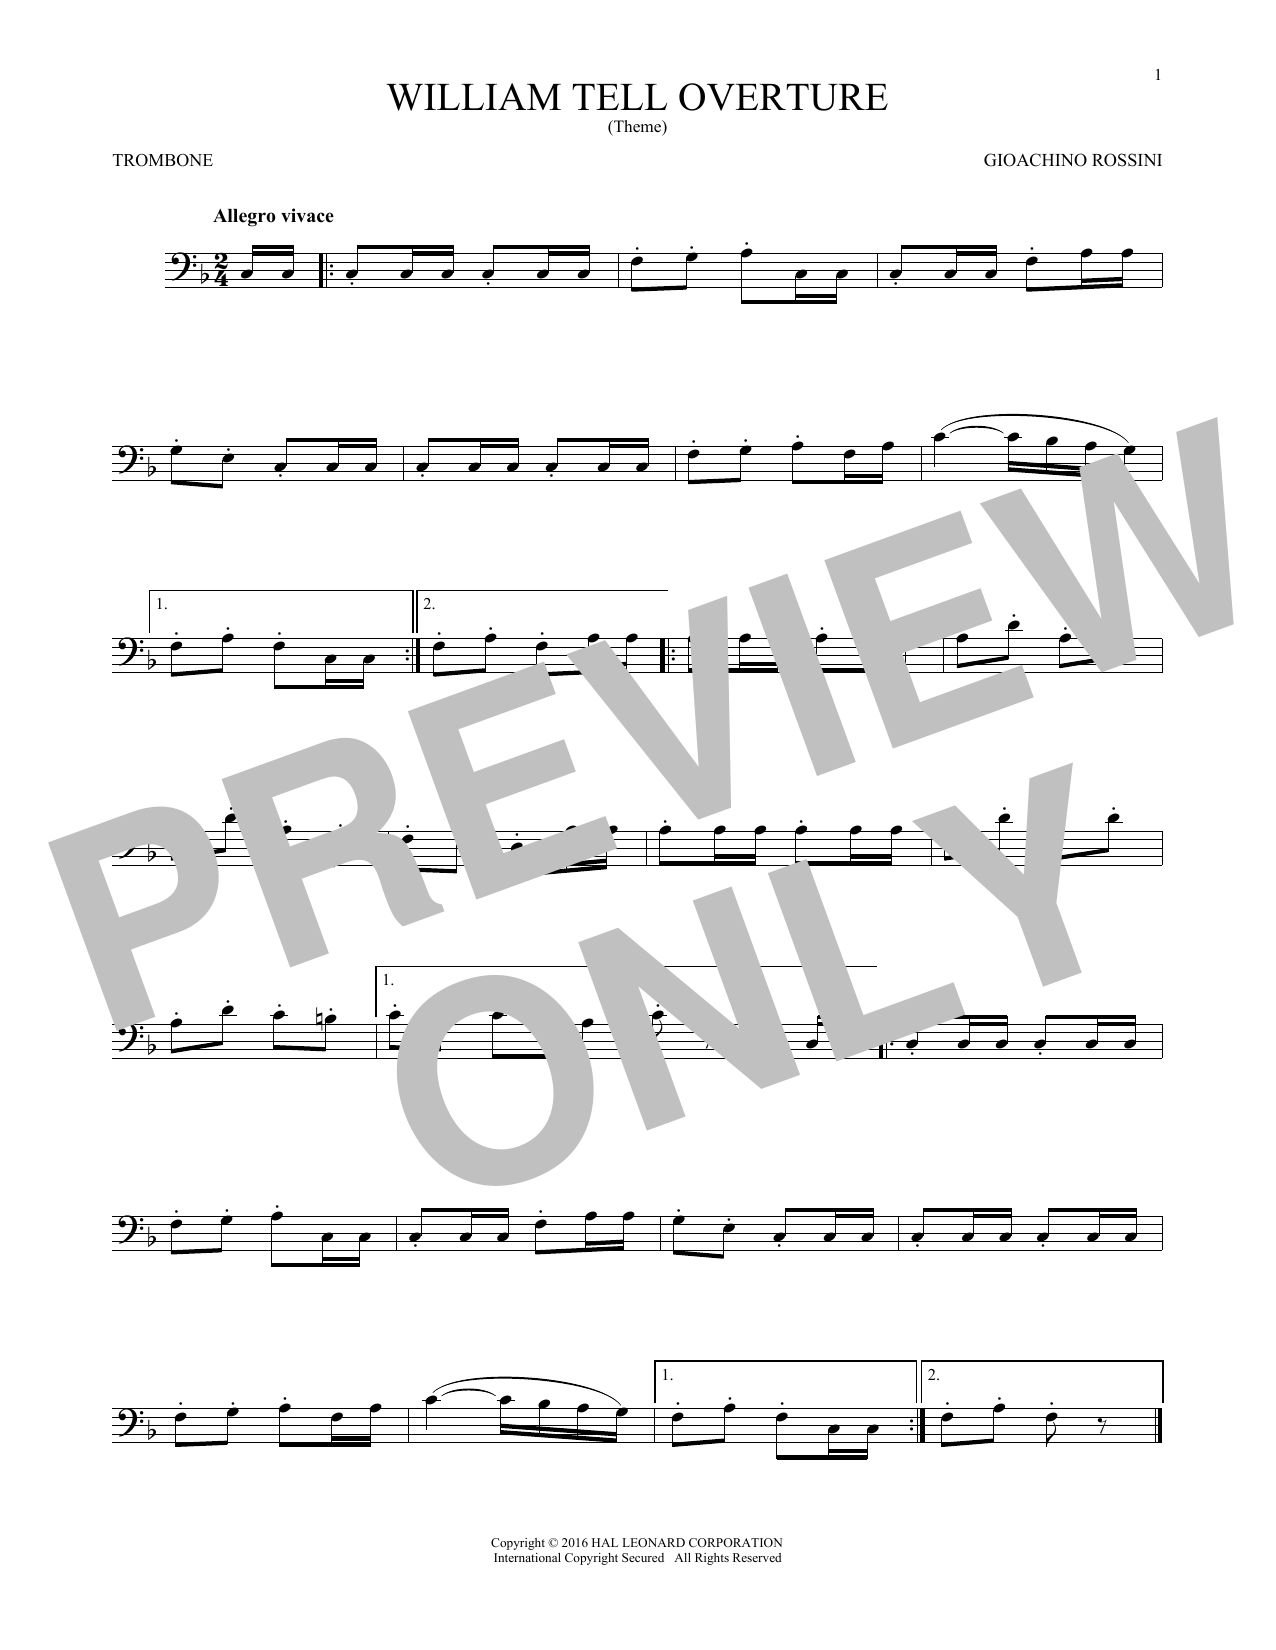 Gioachino Rossini William Tell Overture sheet music notes and chords. Download Printable PDF.